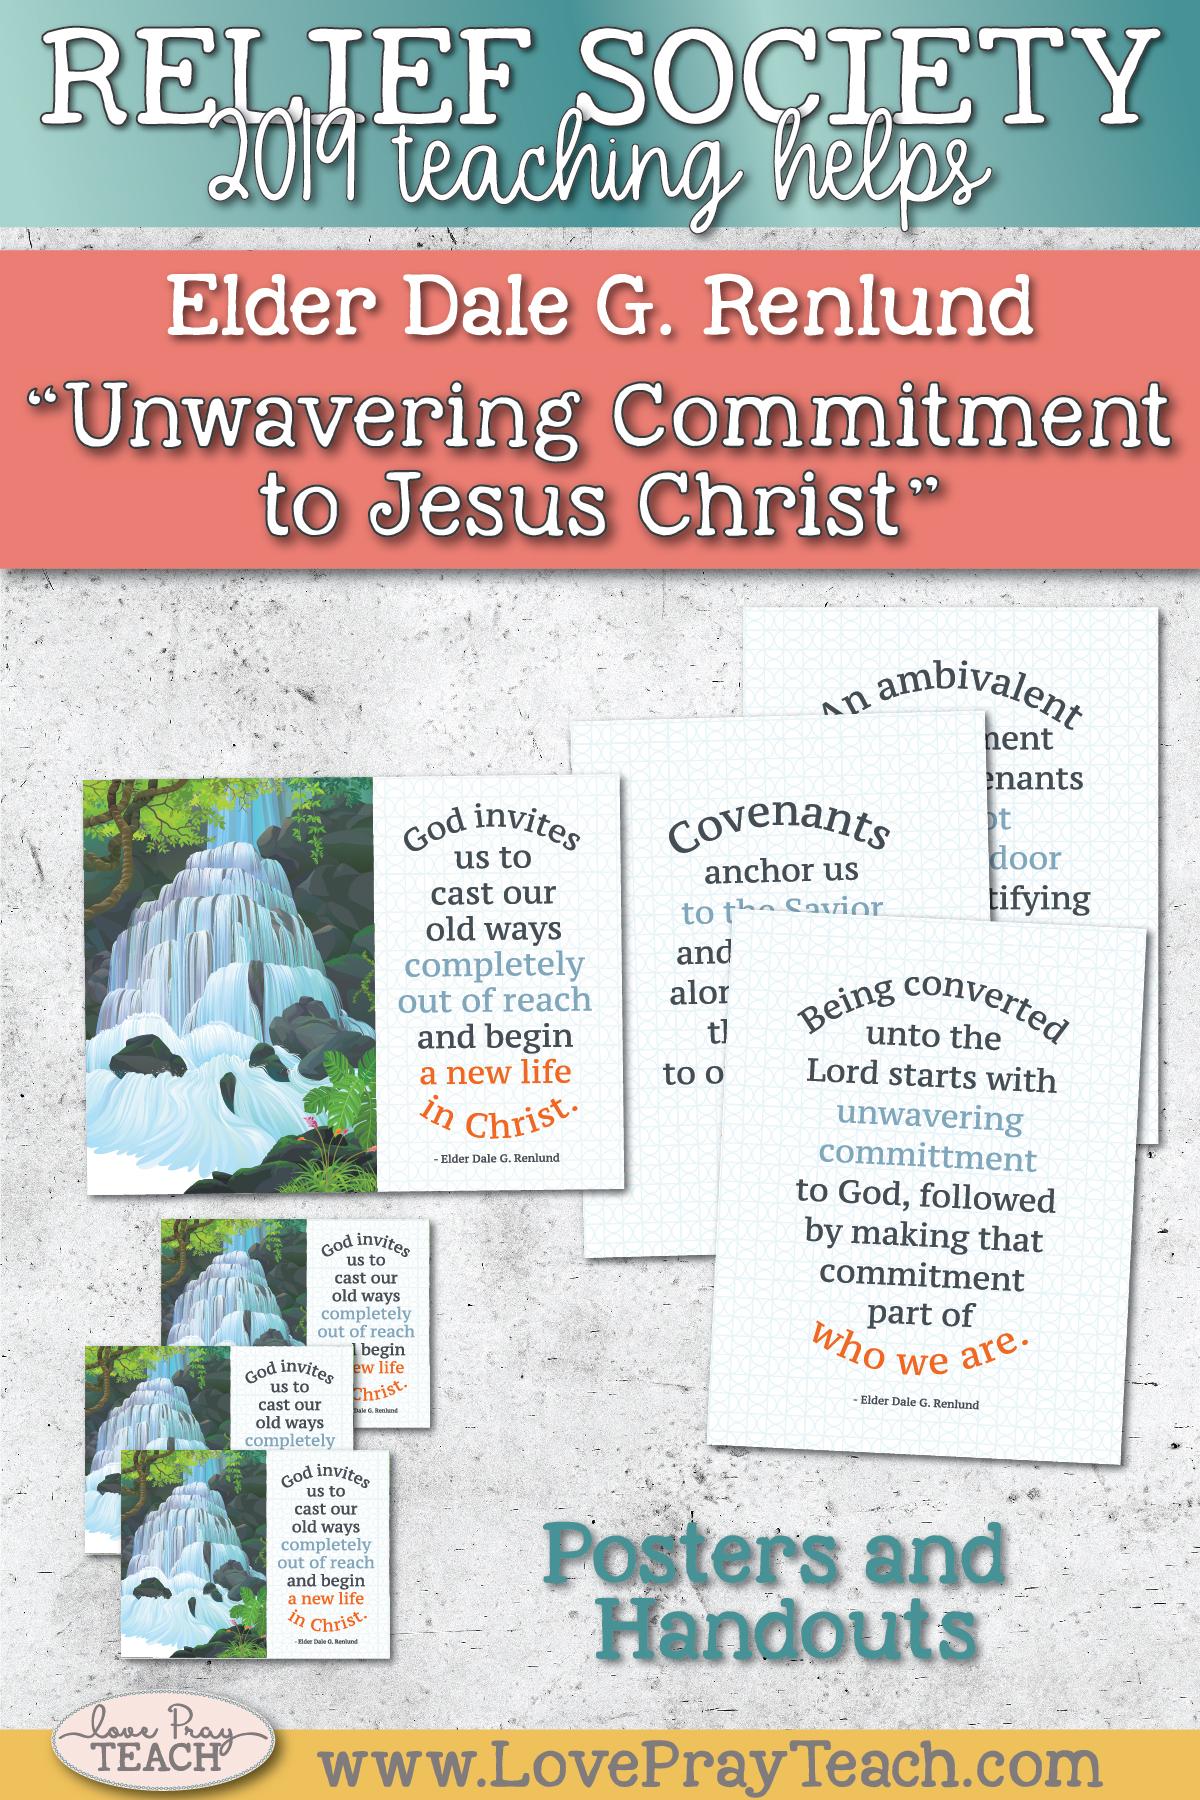 """October 2019 General Conference: Elder Dale G. Renlund """"Unwavering Commitment to Jesus Christ"""" Printable Lesson Helps and Handouts"""